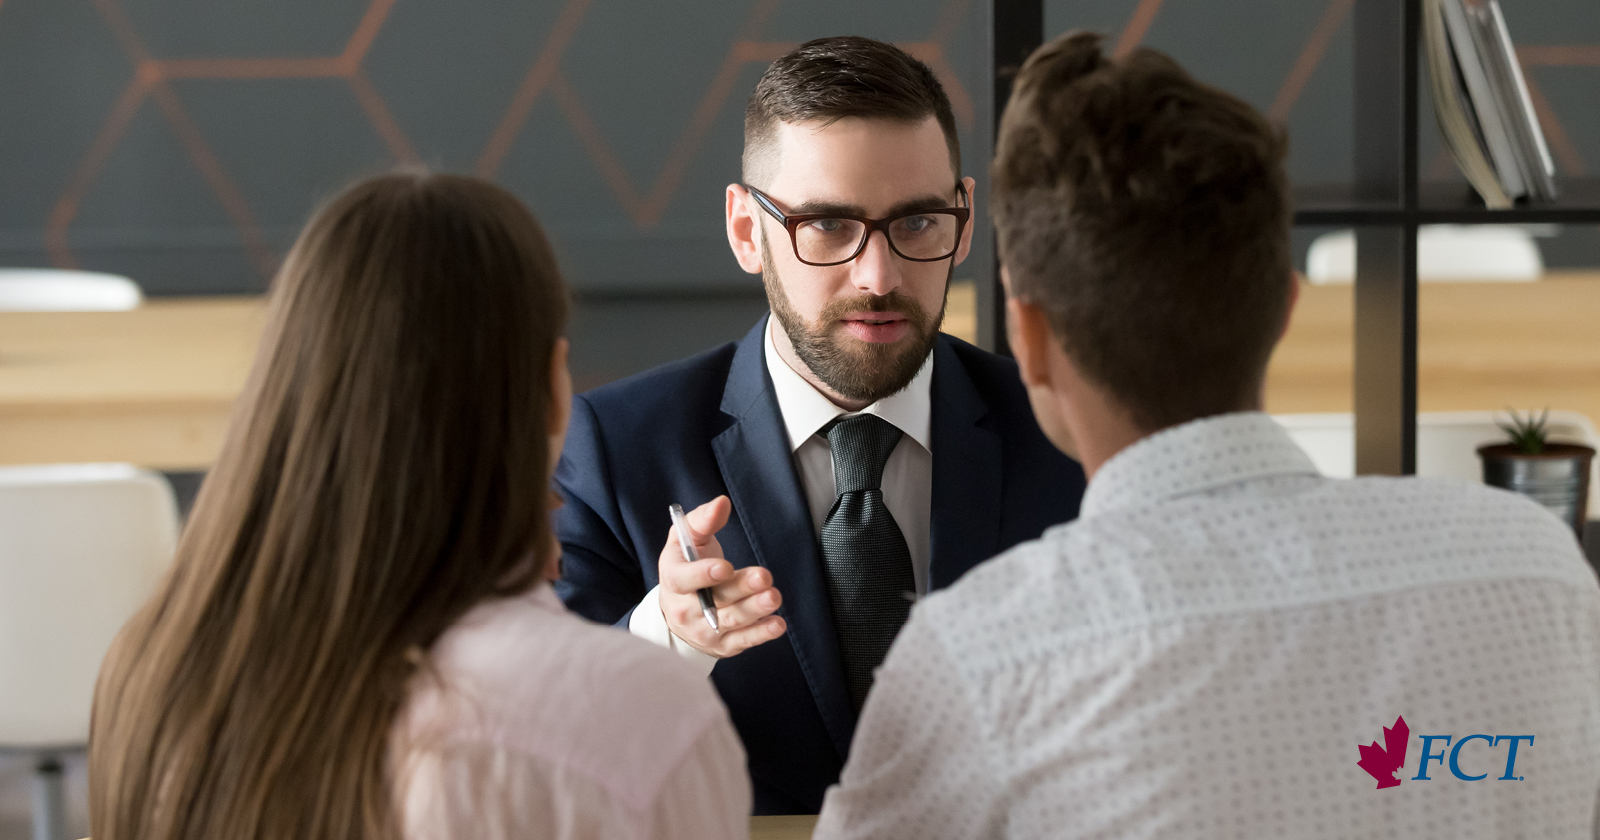 lender explains serious topic to couple in his office